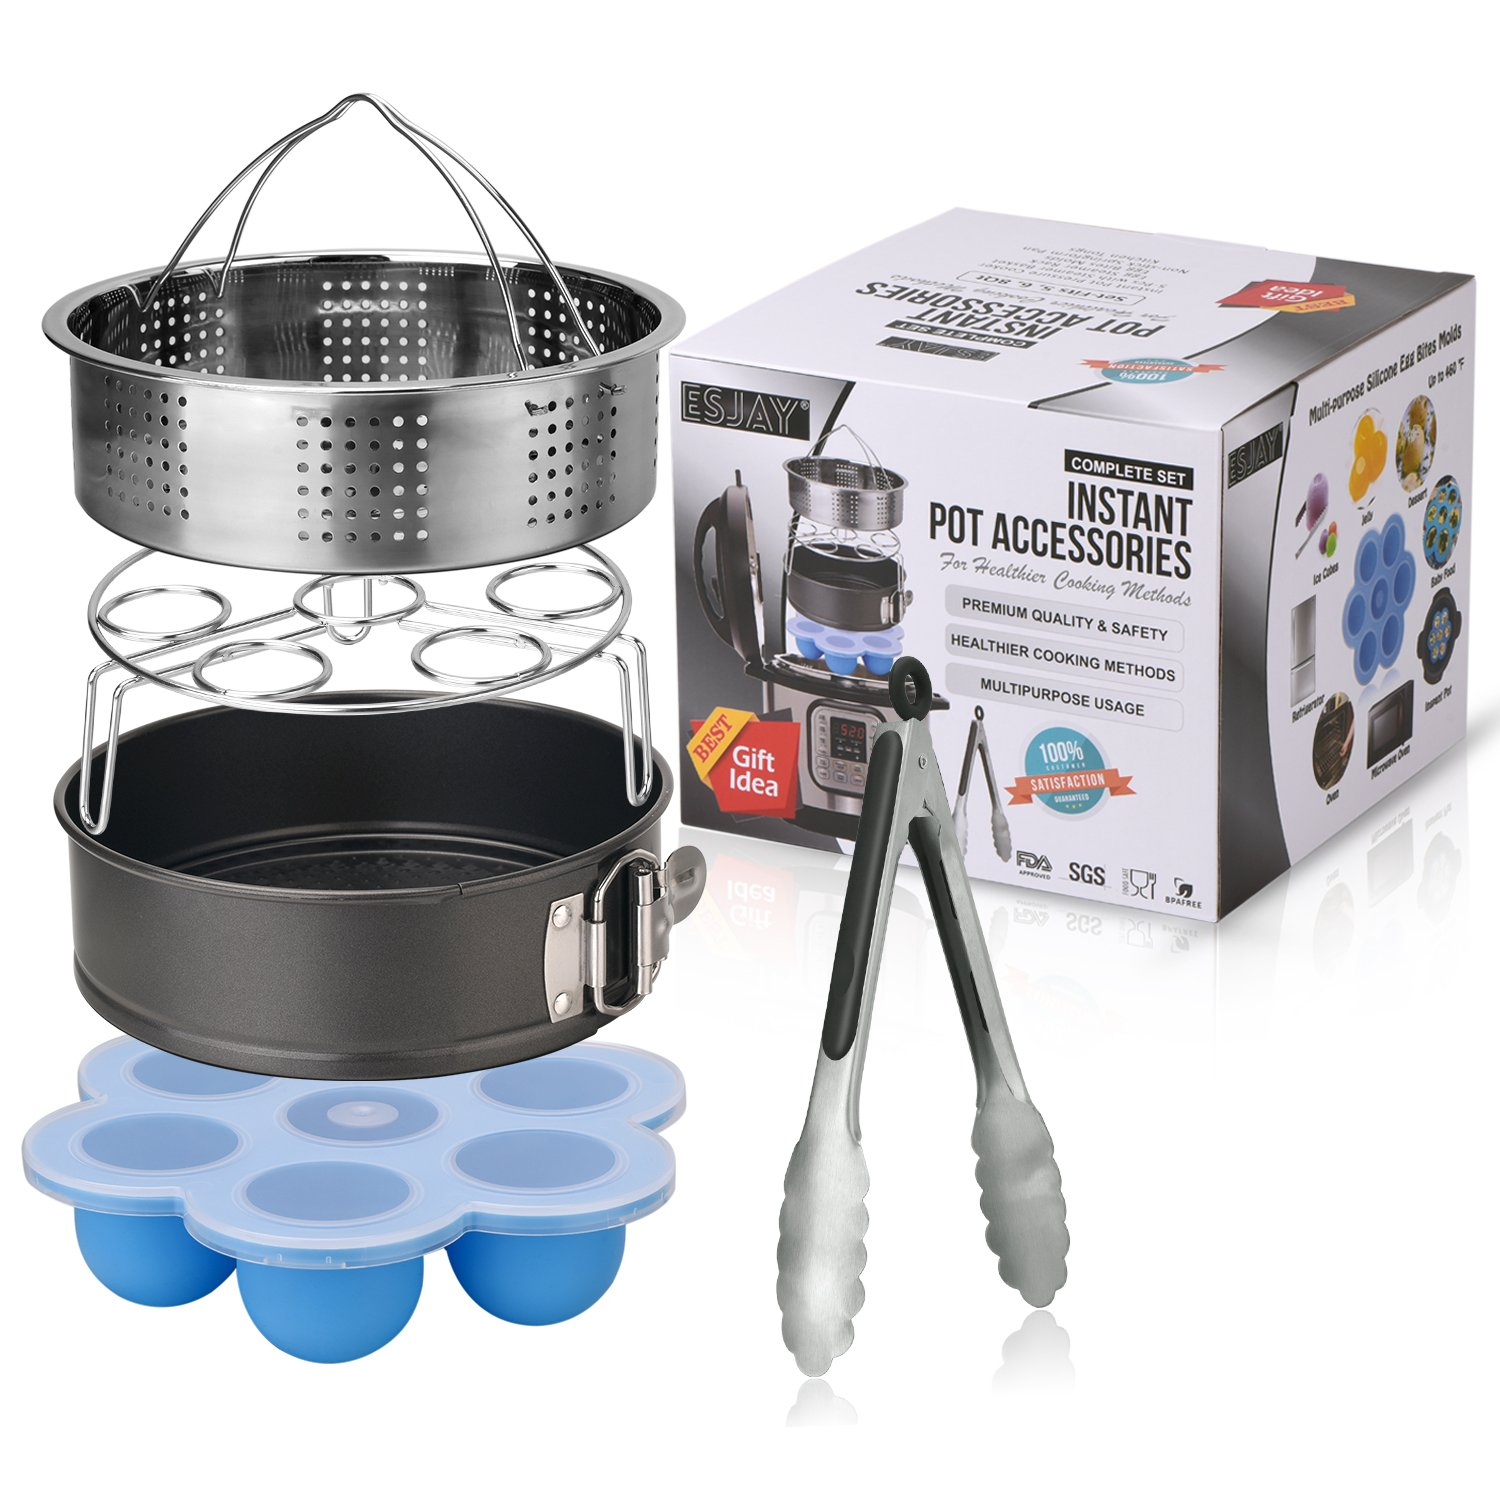 Instant Pot Accessories Set-